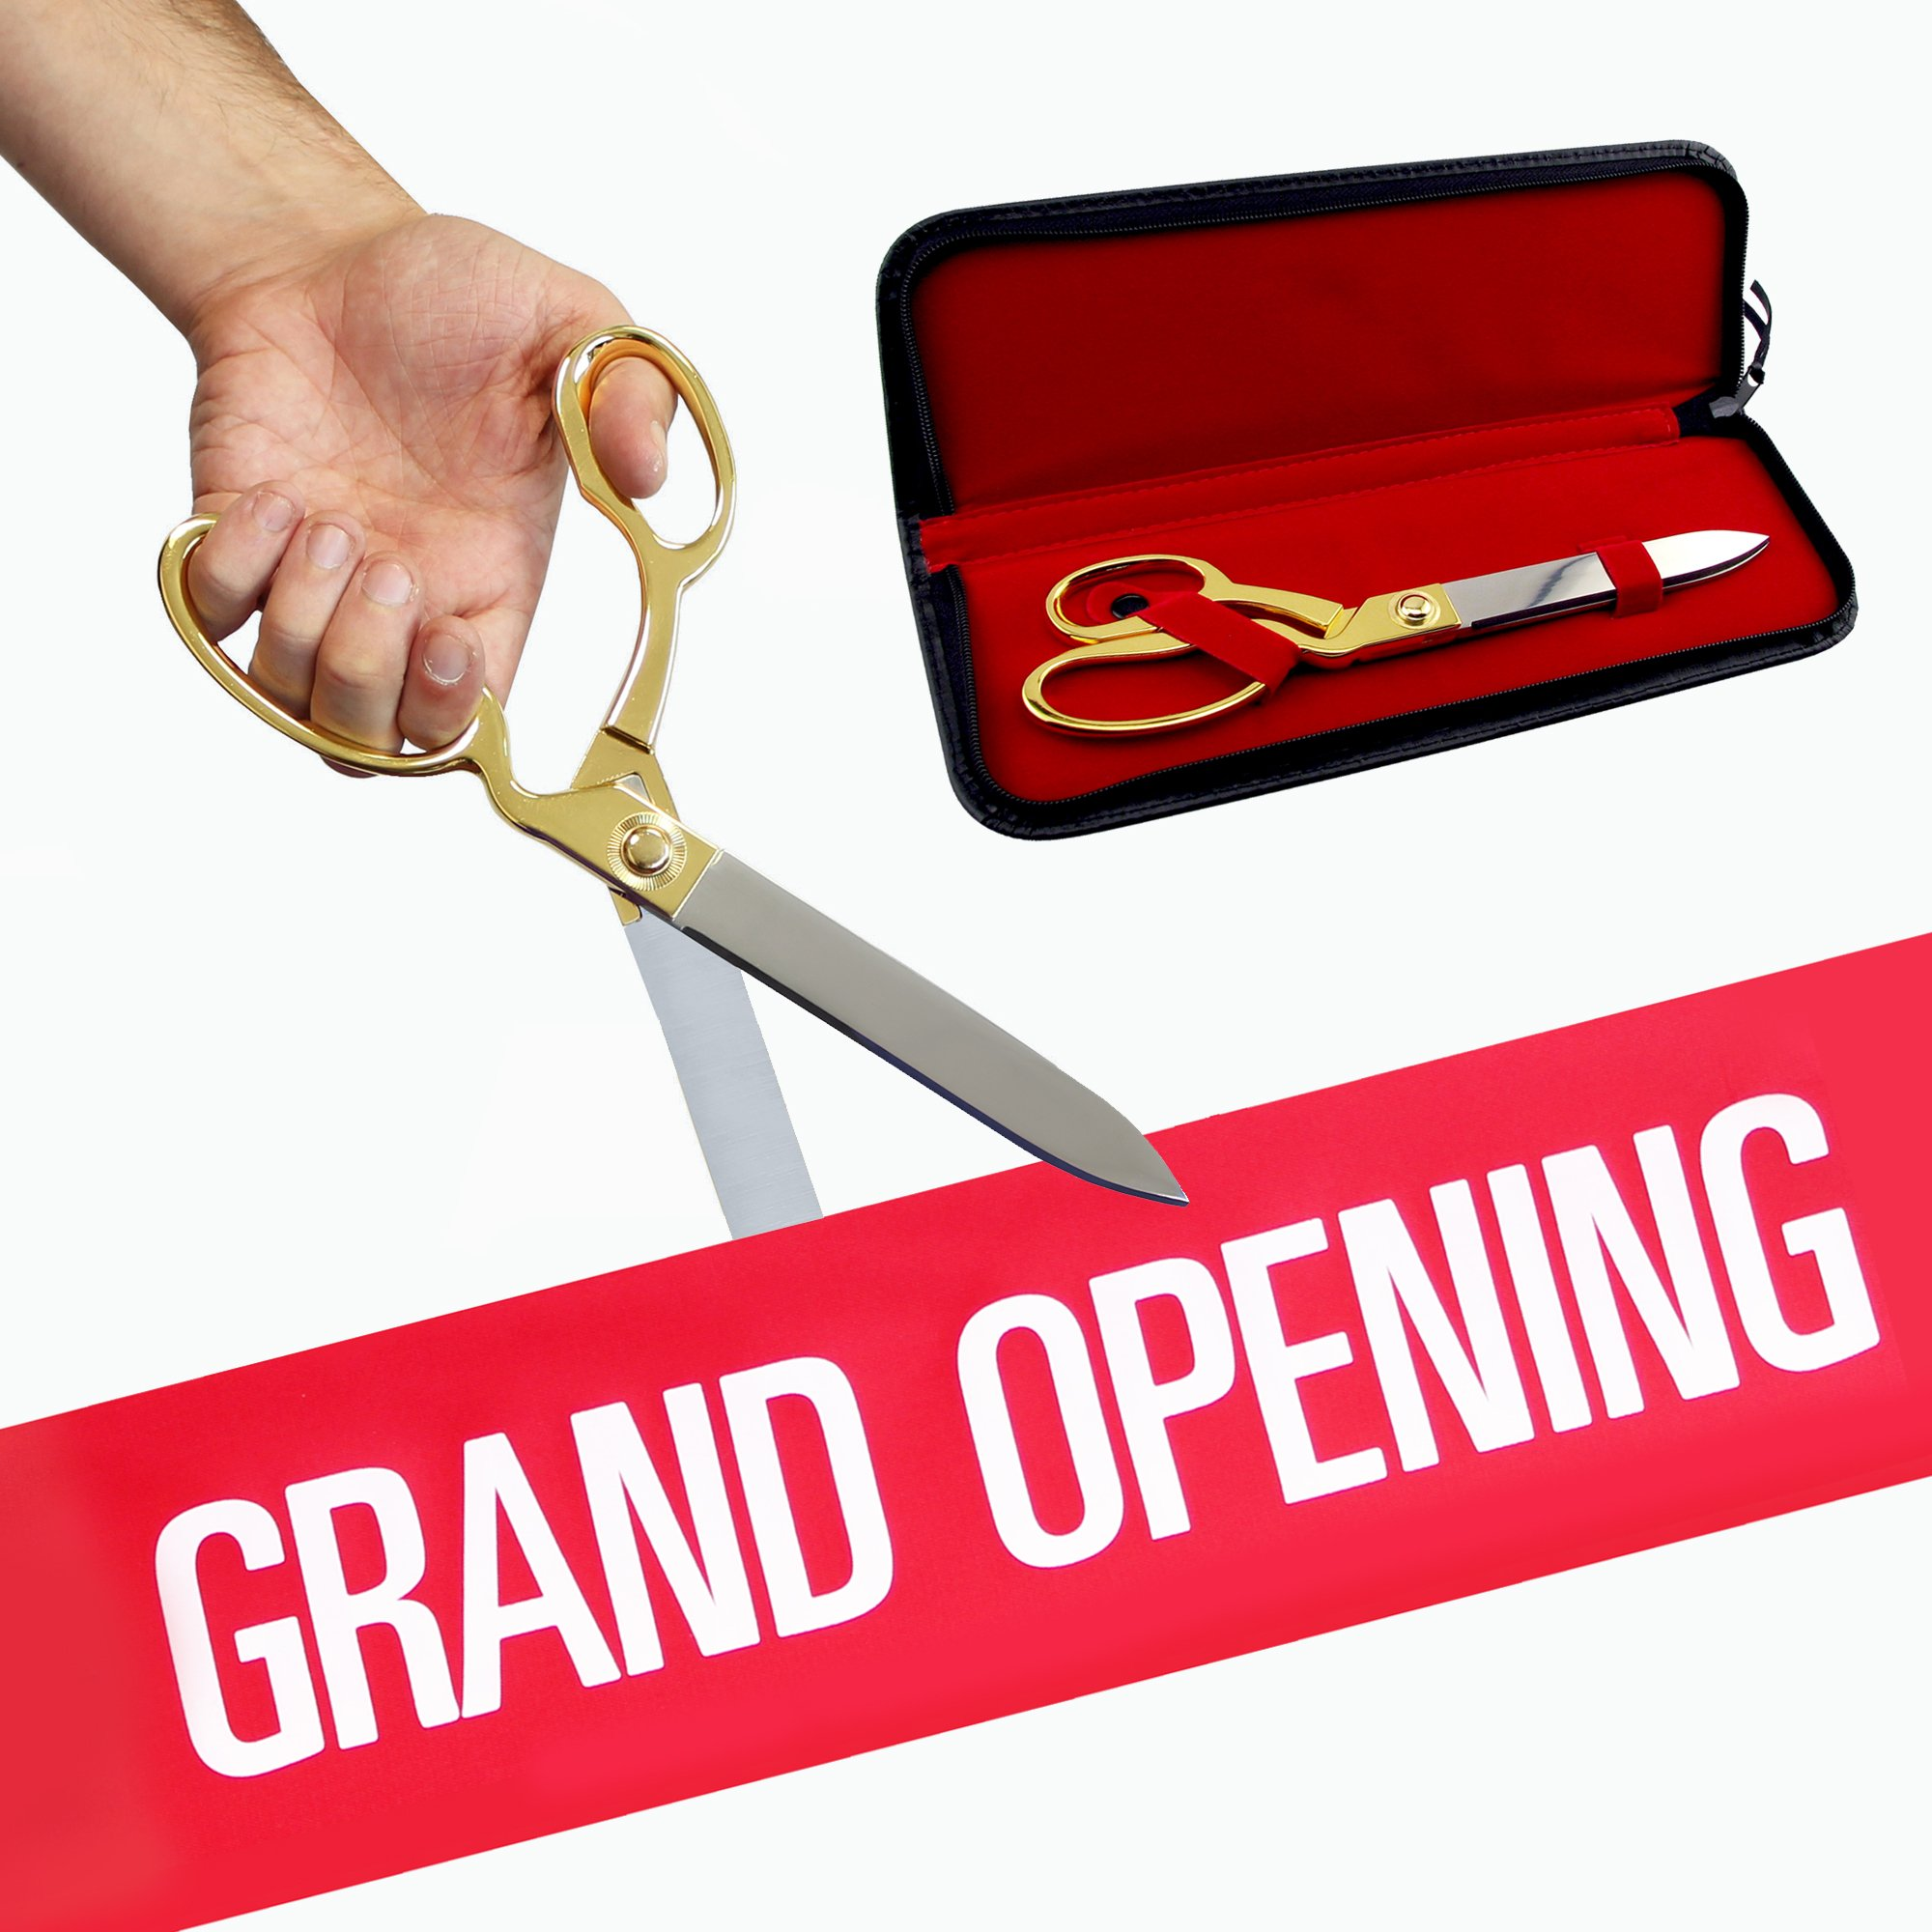 FREE Grand Opening Ribbon with 10 1/2'' Gold Plated Handles Ceremonial Ribbon Cutting Scissors and Case by Engraving, Awards & Gifts